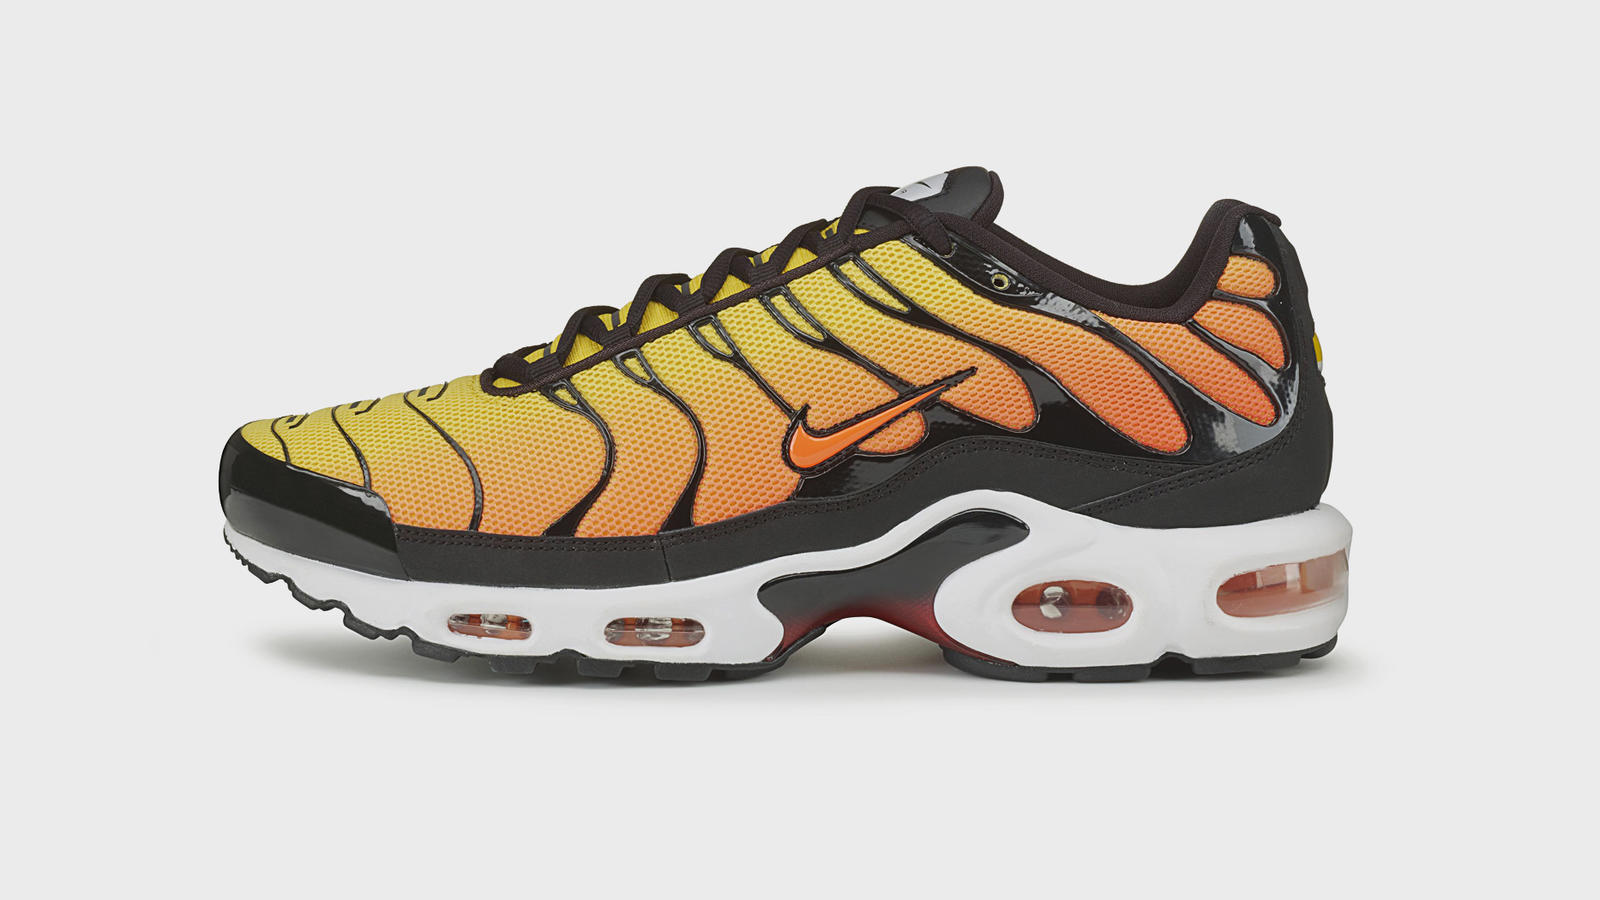 detailed look 17cef 7ce55 The Untold Story of the Nike Air Max Plus 23